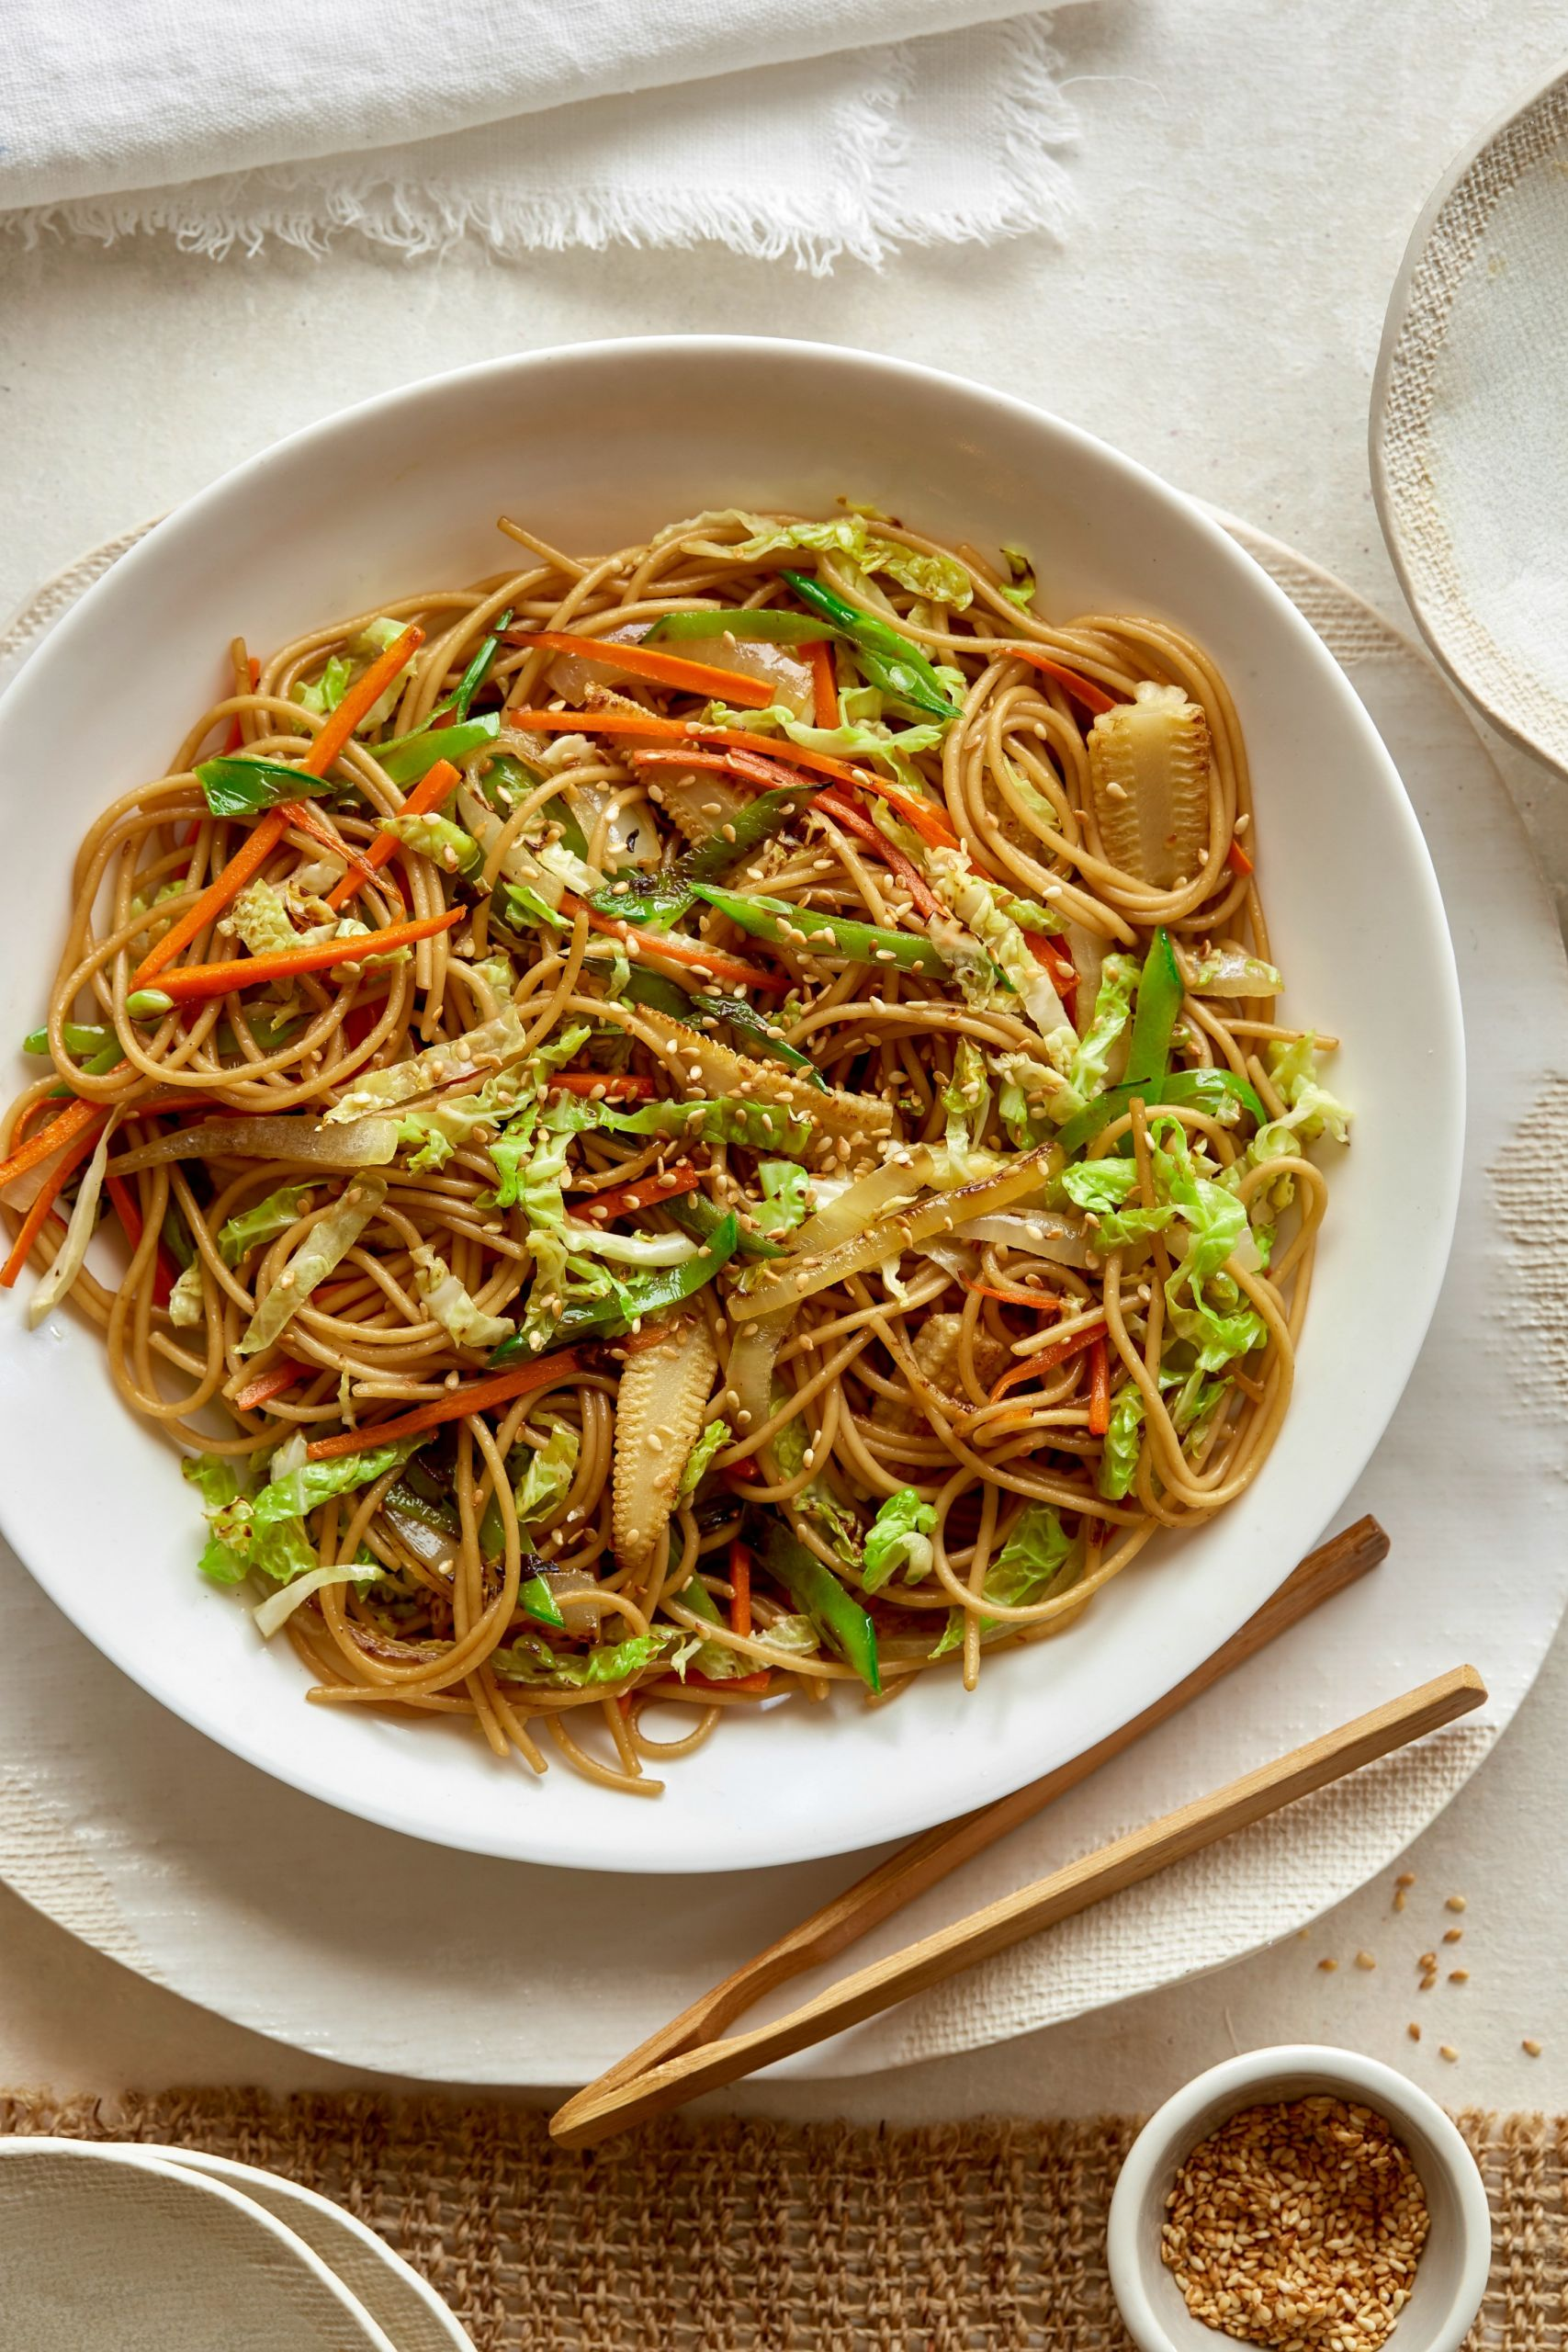 Chinese Foods Recipes With Pictures  70 Authentic Chinese Food Recipes How To Make Chinese